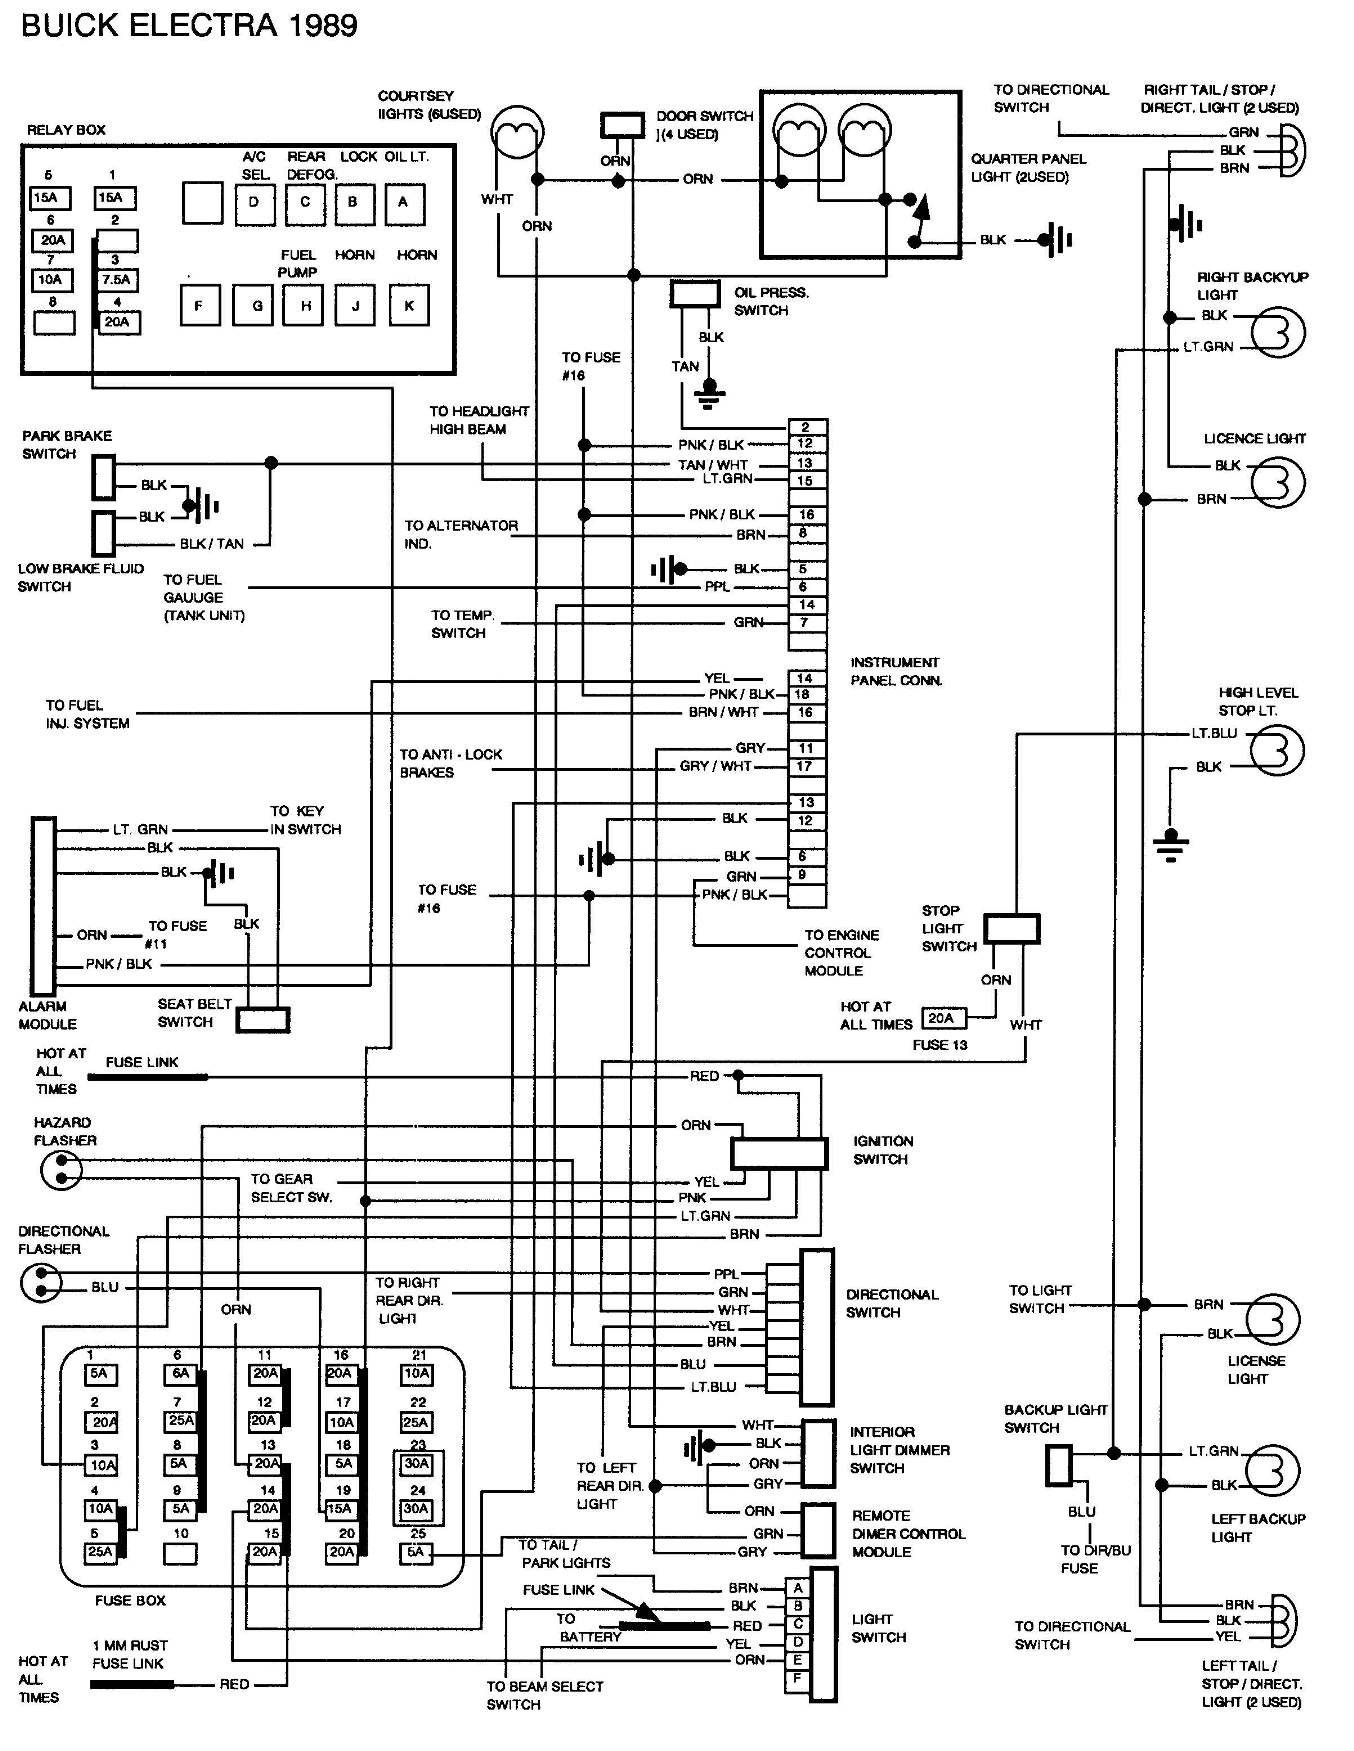 06 325i fuse box diagram